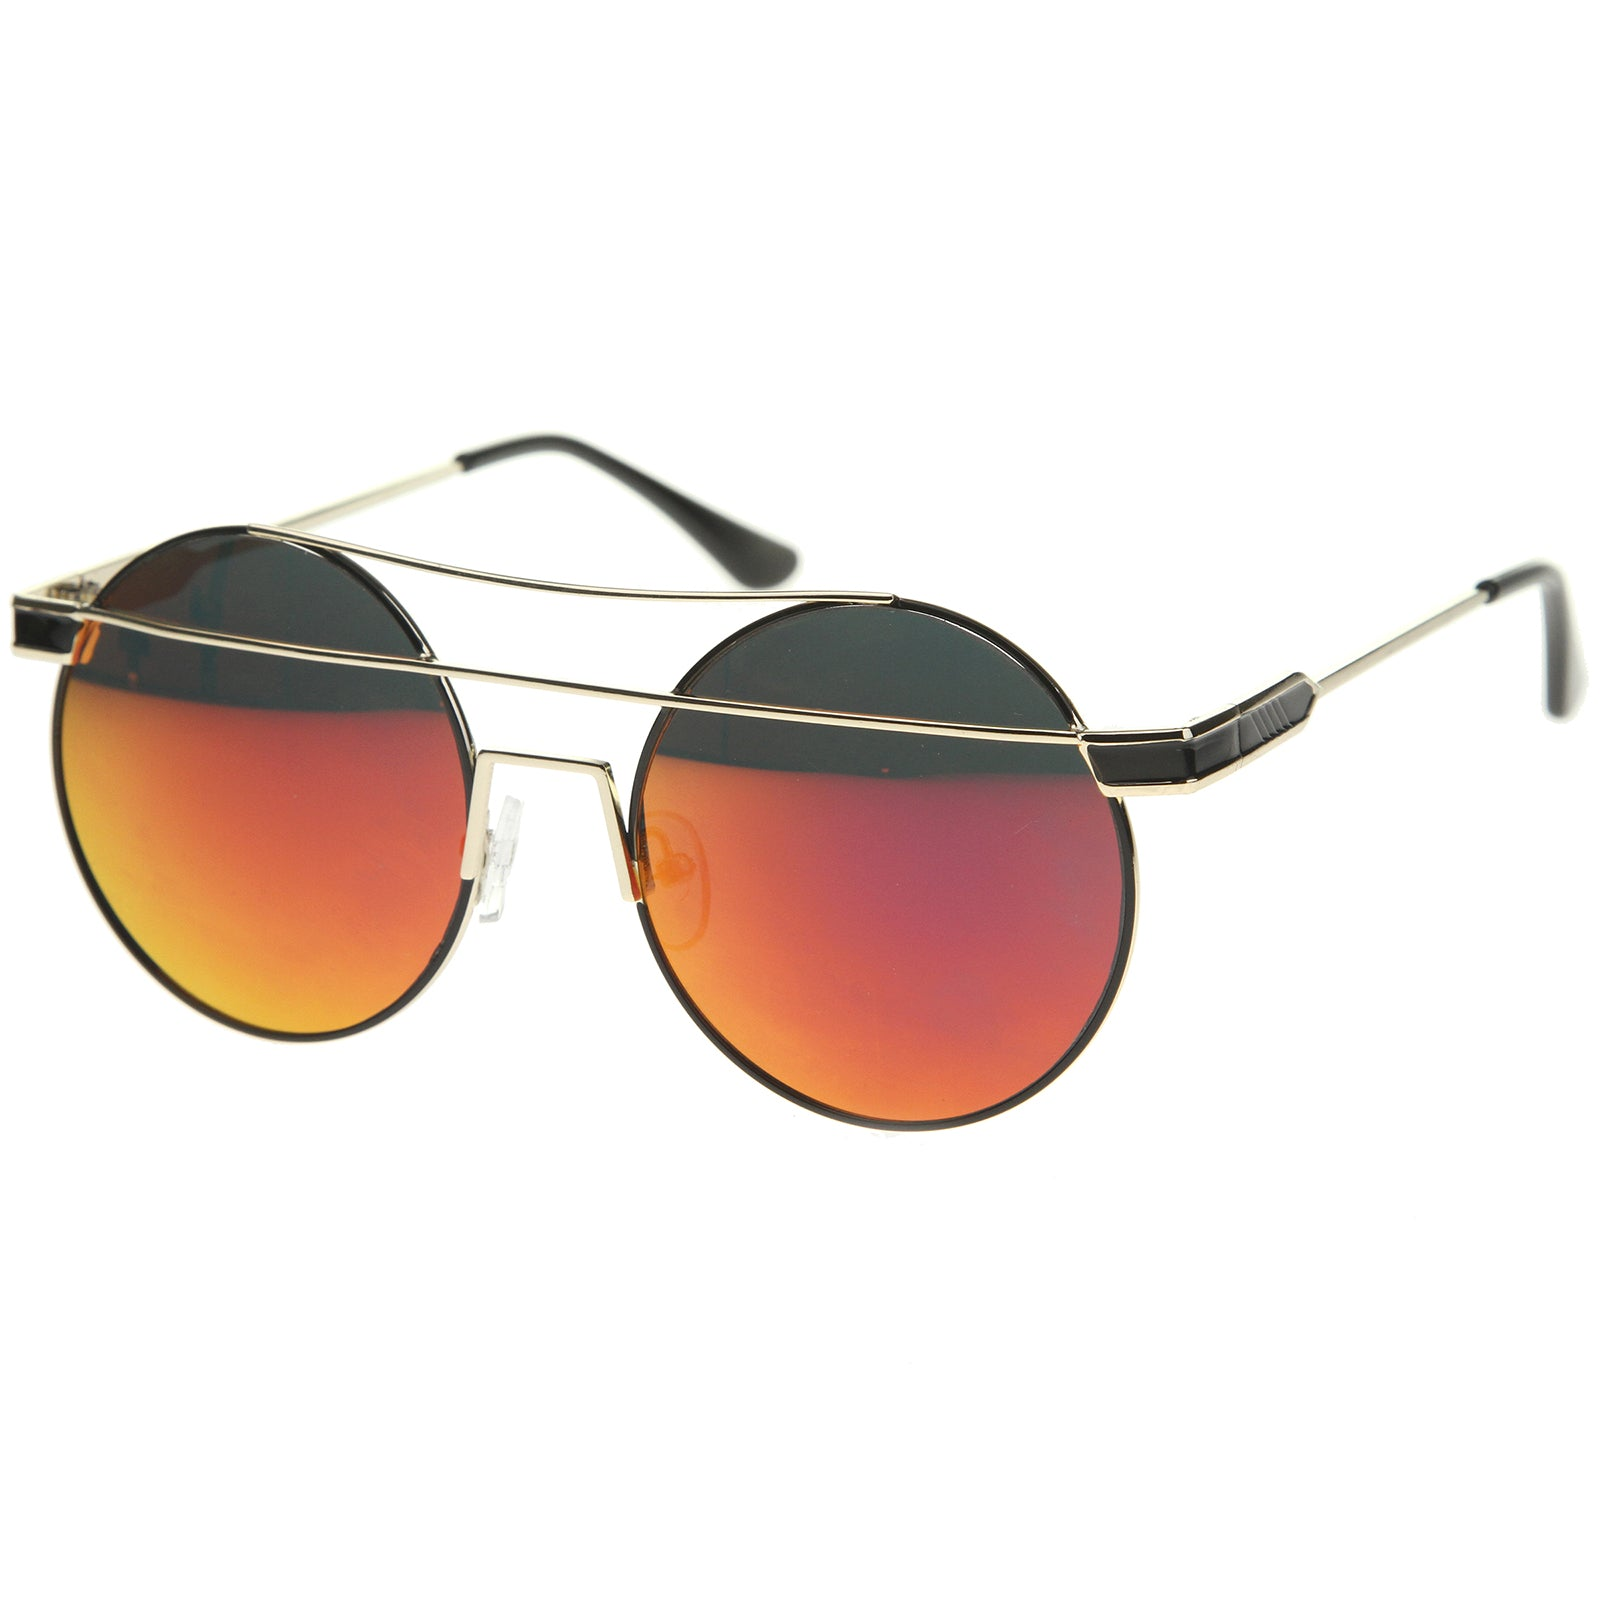 Modern Metal Frame Double Bridge Colored Mirror Lens Round Sunglasses 59mm - sunglass.la - 22